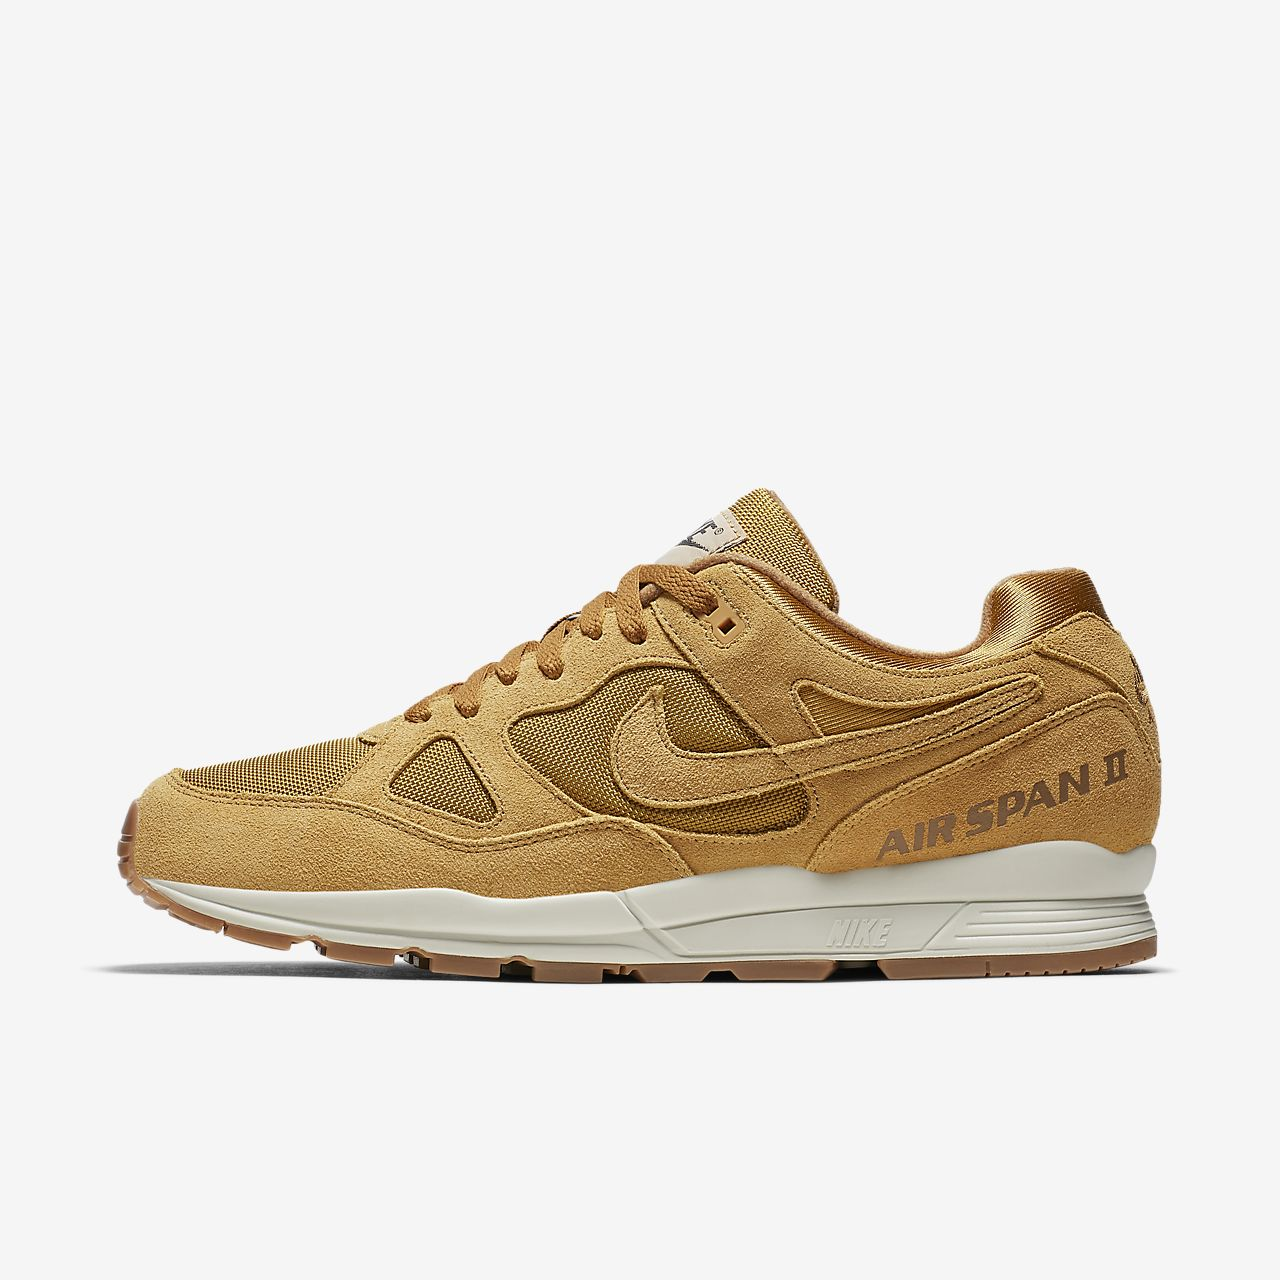 Nike Air Span II Premium Men's Shoe